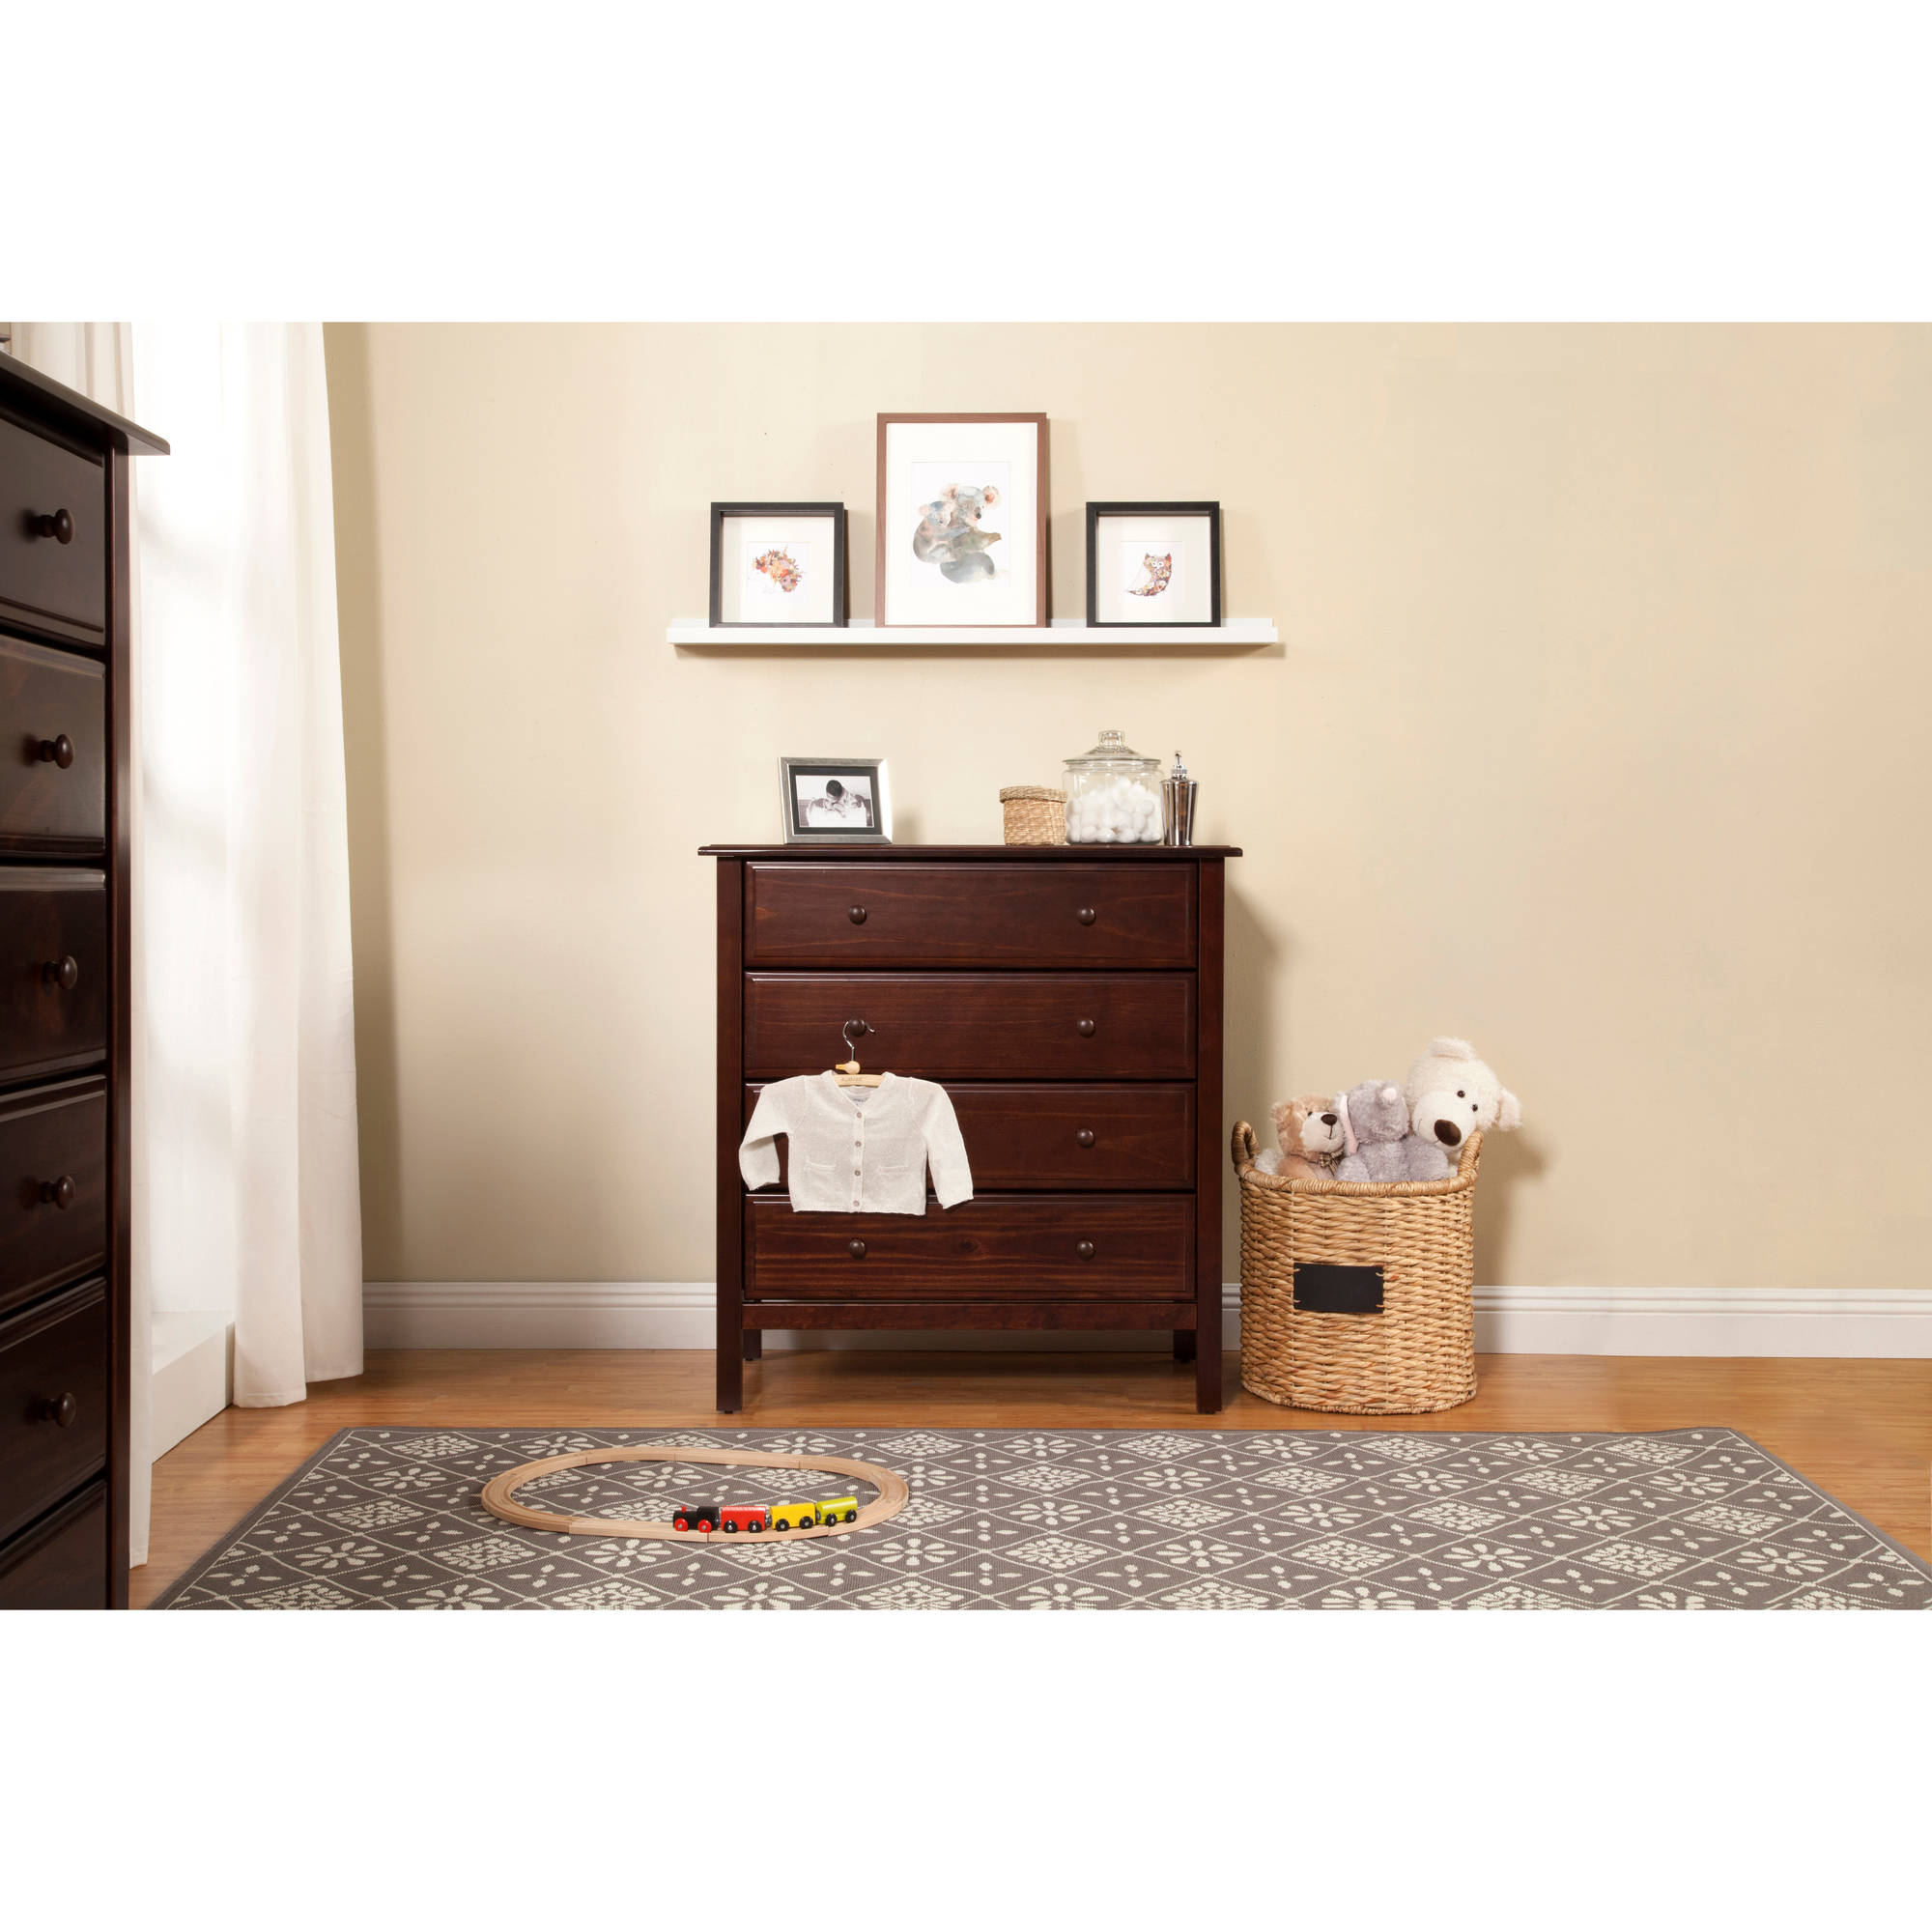 DaVinci Jayden - 4-Drawer Dresser, Choose Your Finish